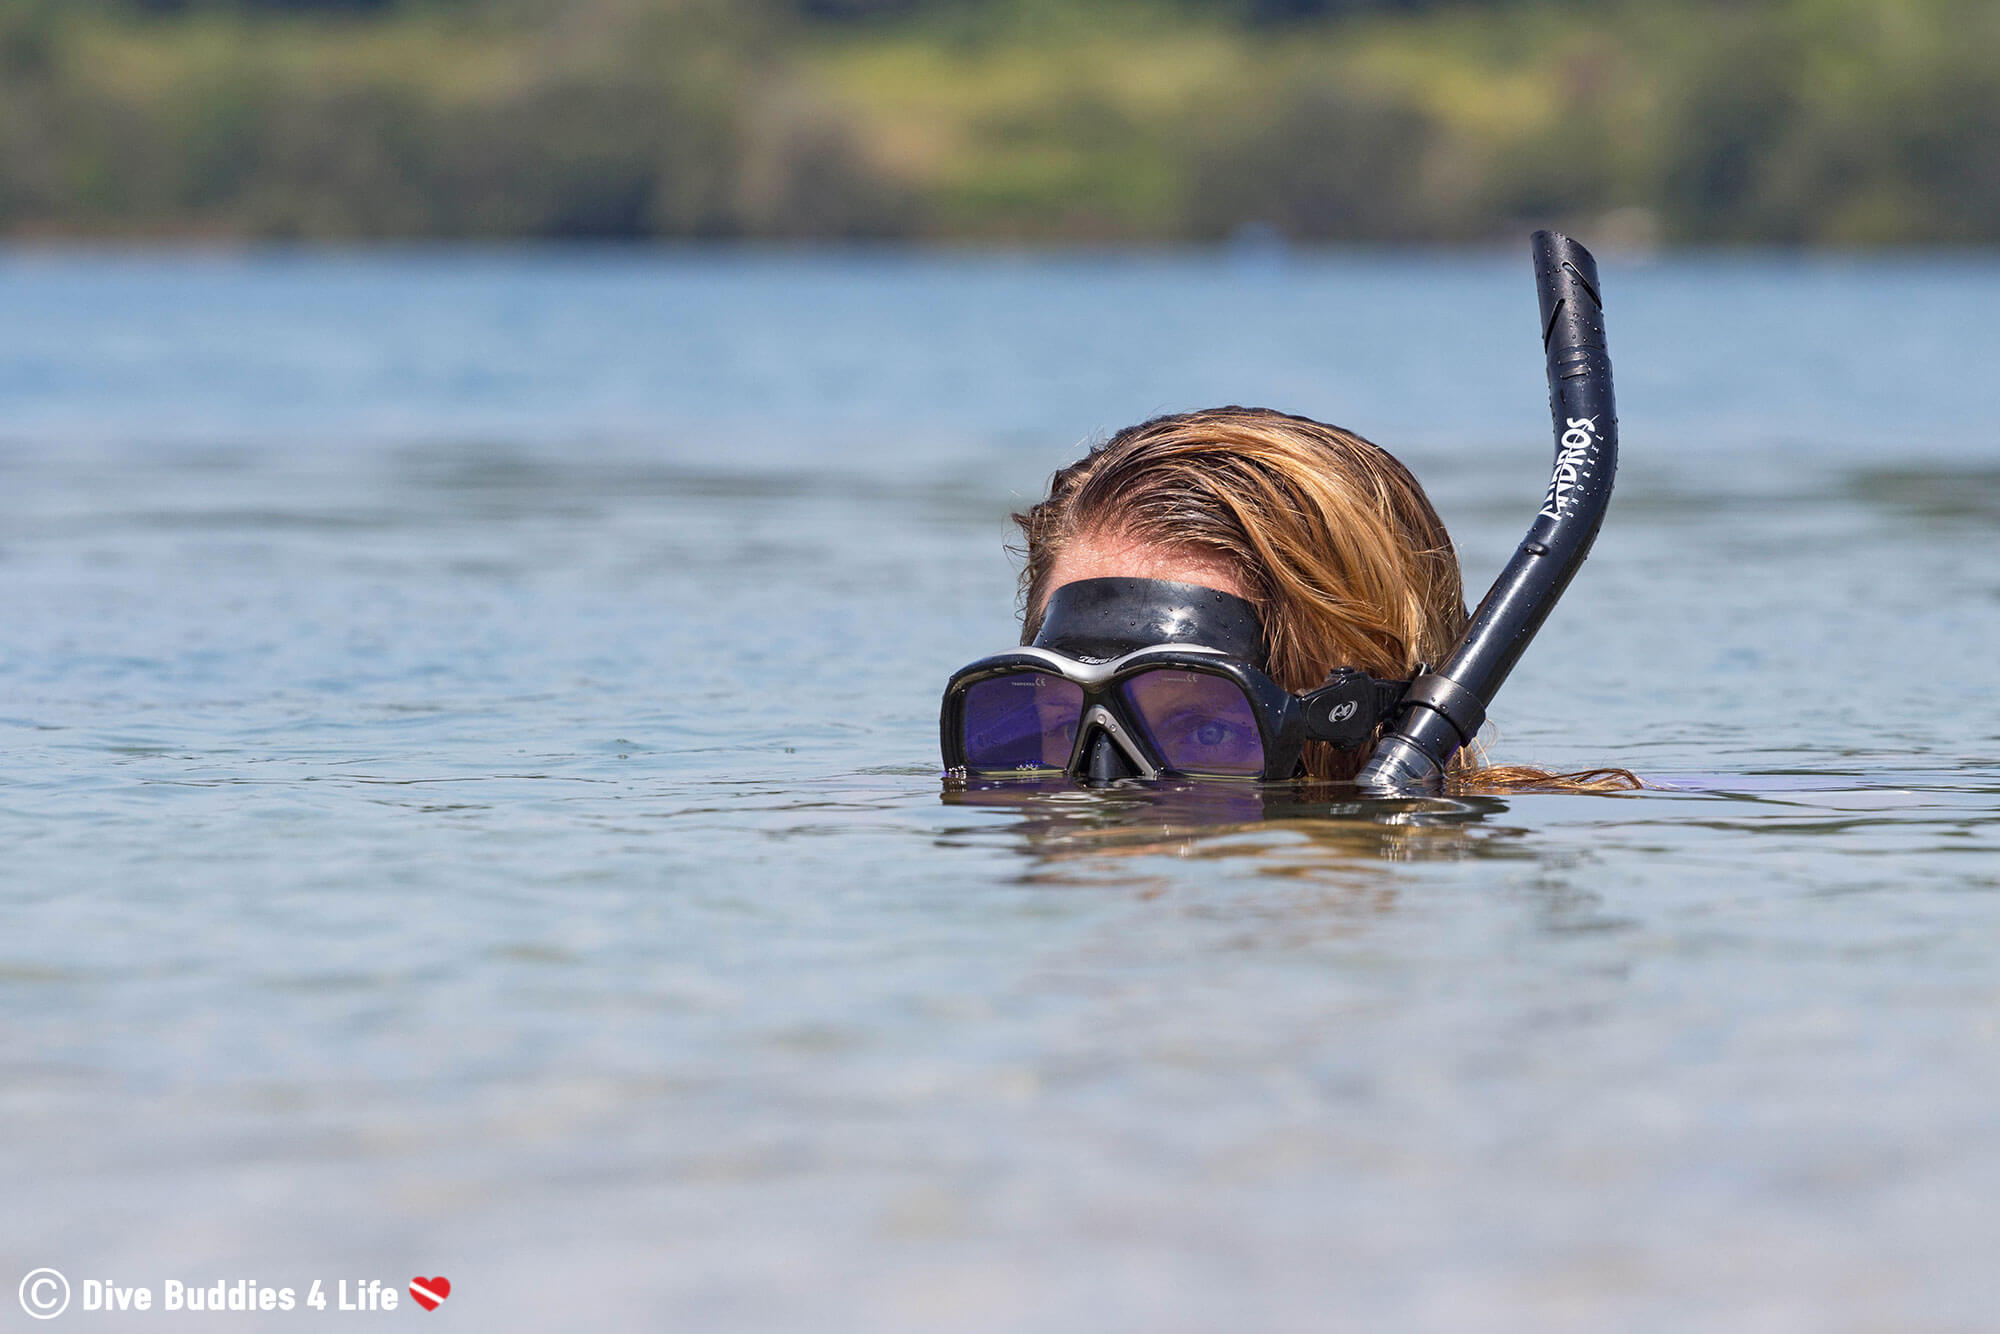 Ali With A Snorkel Getting Ready To Find Some Manatee's Underwater In Florida, USA